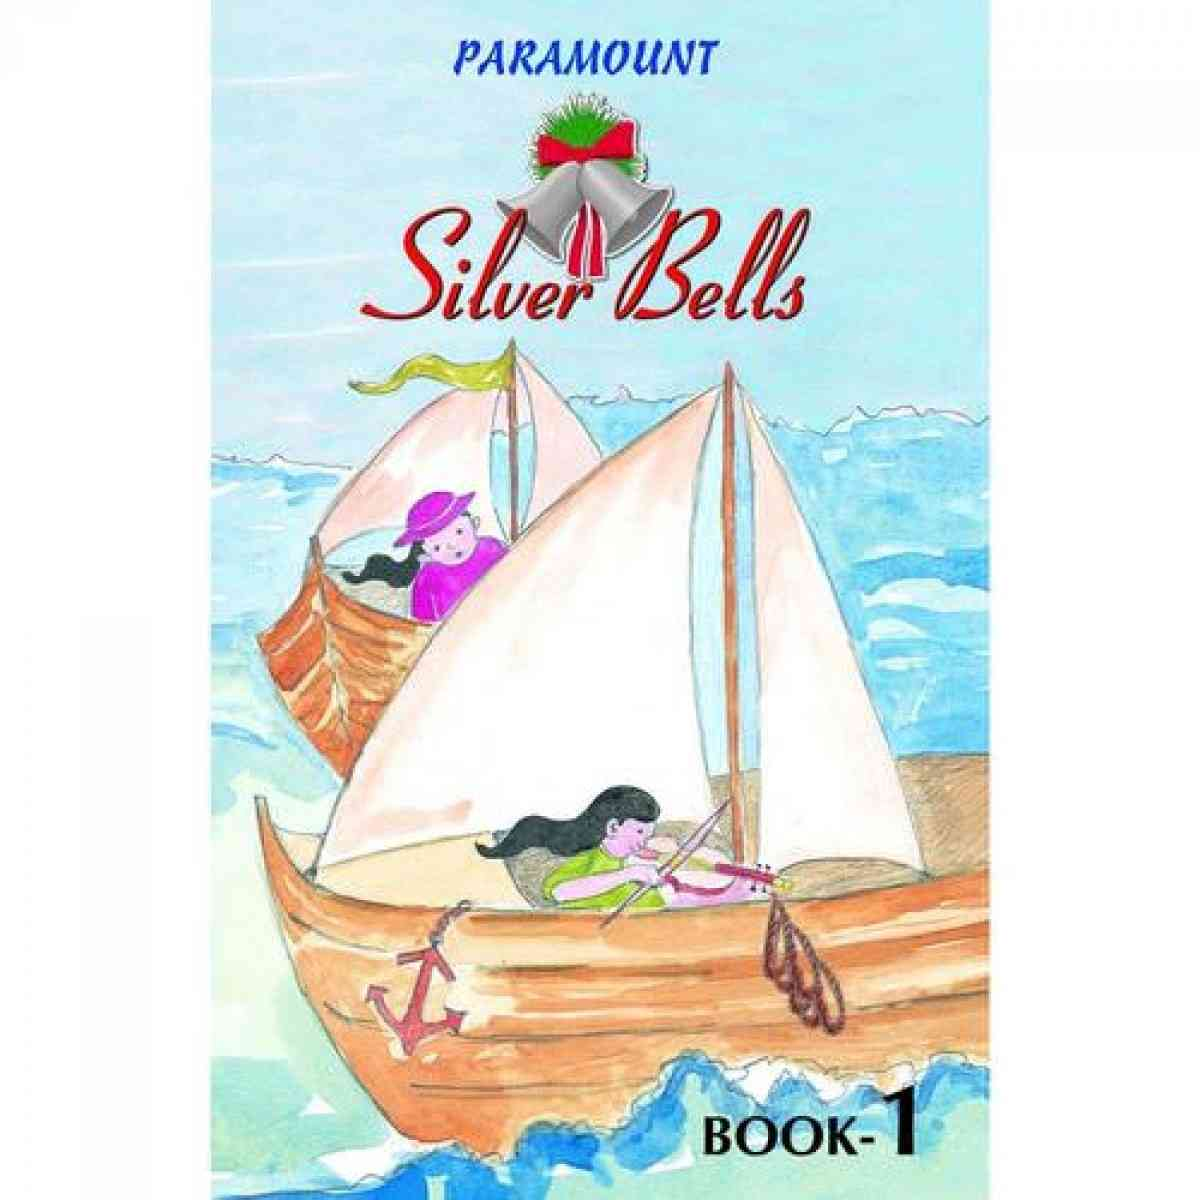 Paramount Silver Bells: Book 1